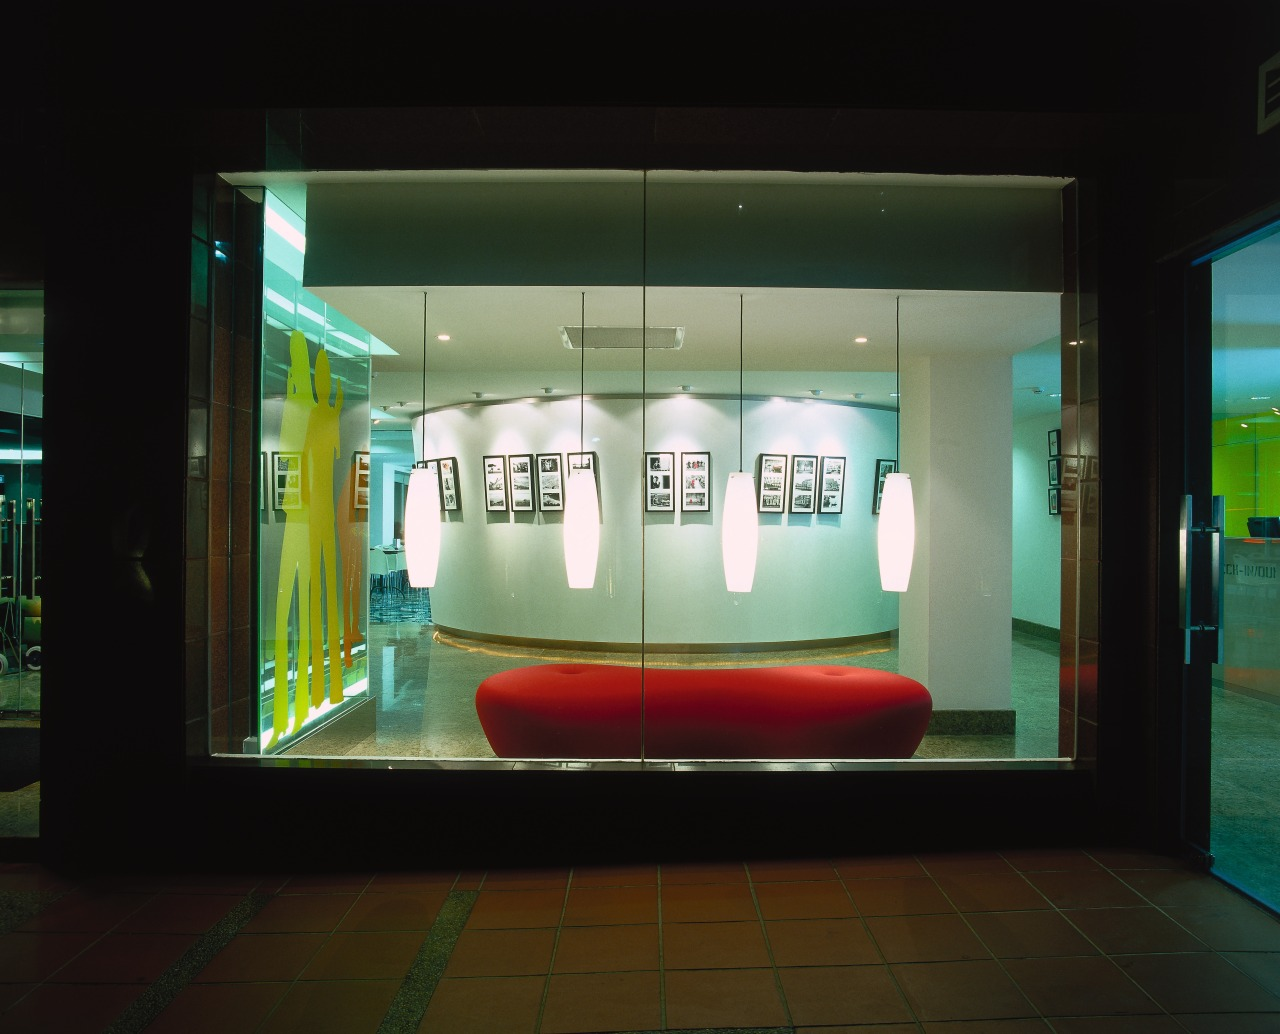 View of the lobby display device, display window, glass, technology, tourist attraction, black